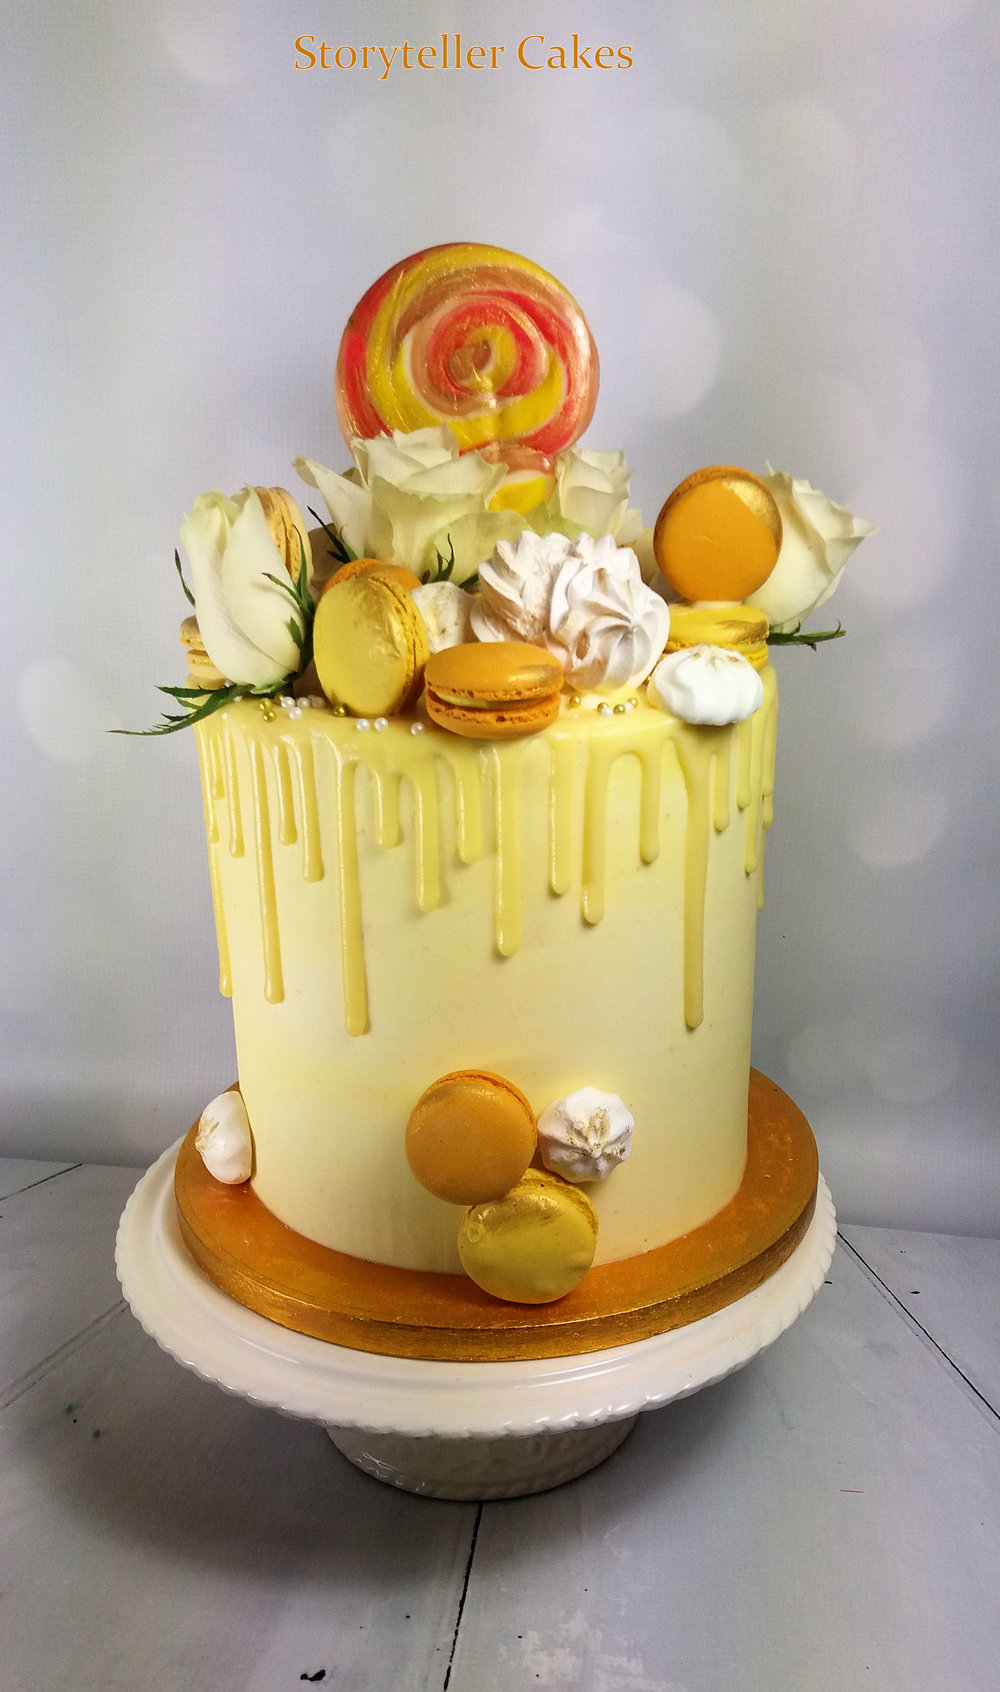 Lemon White Chocolate Drippy buttercream cake 1.jpg